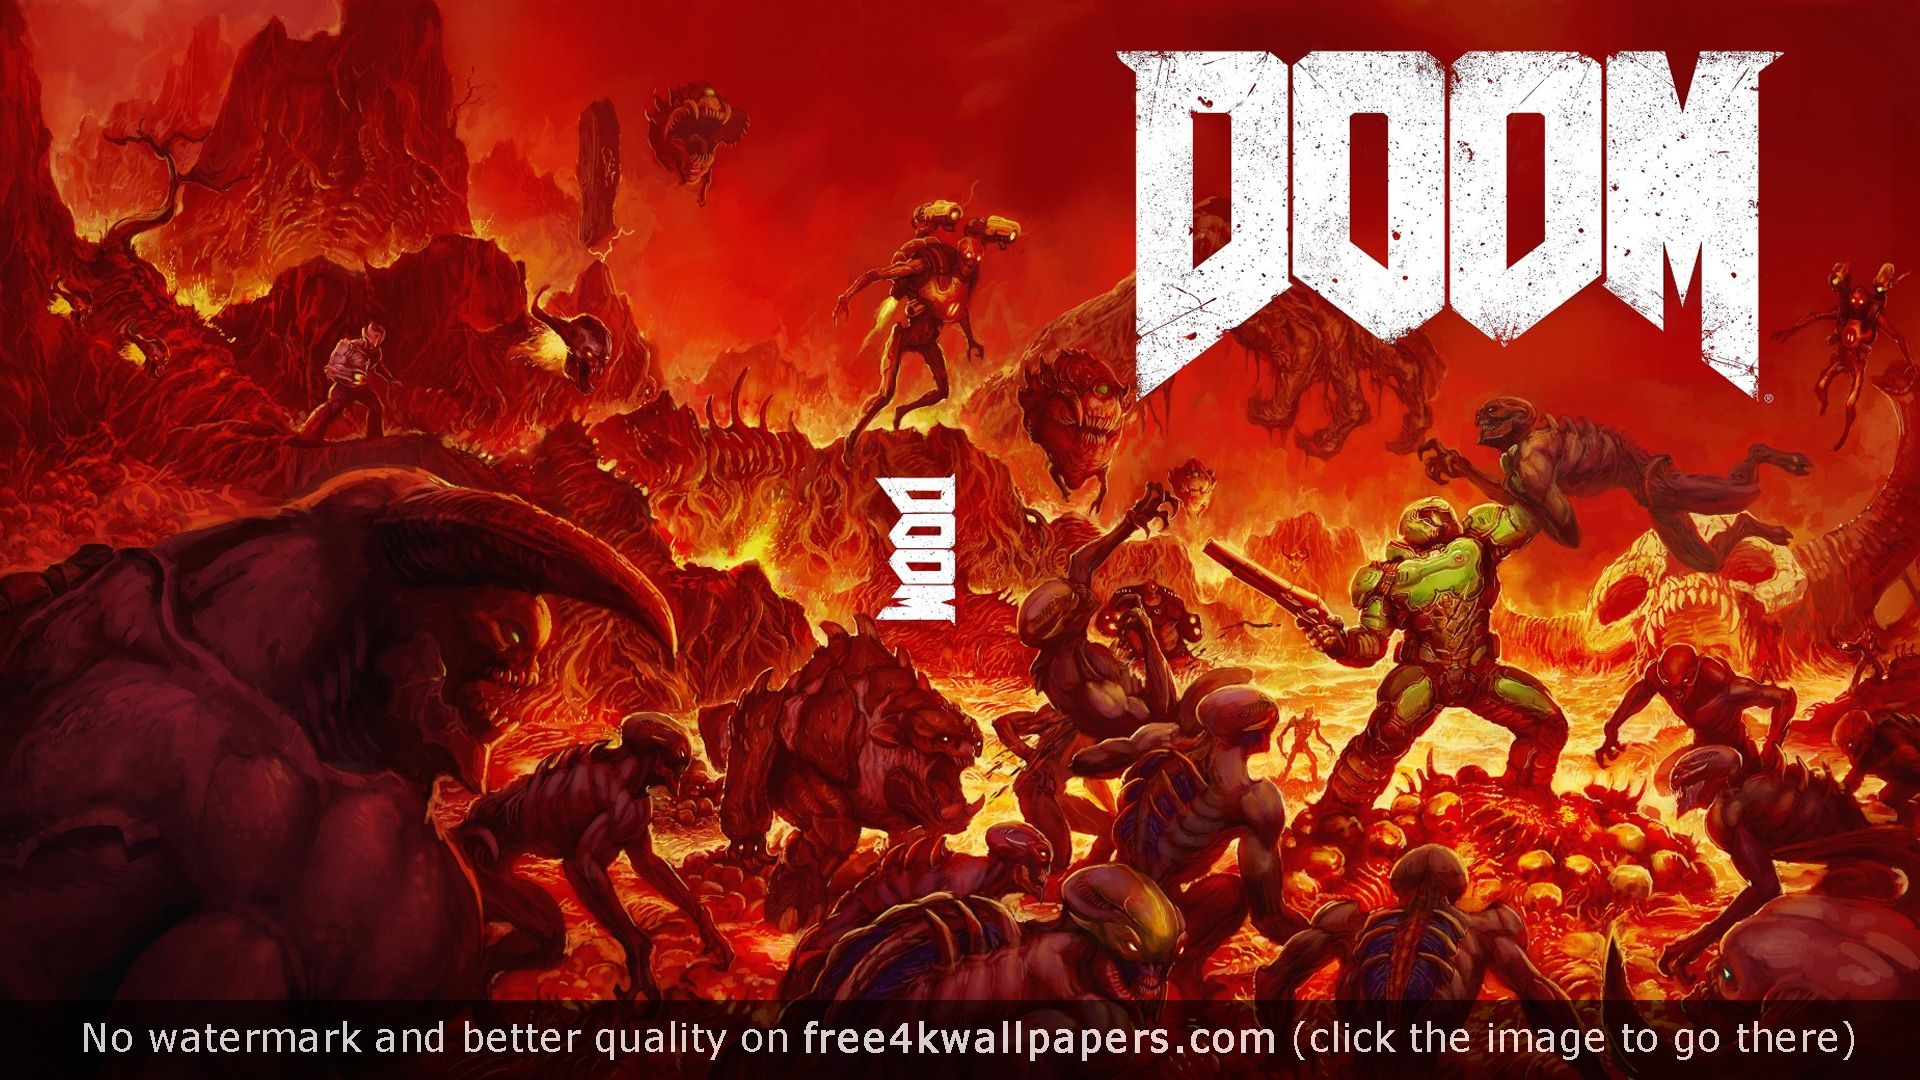 Doom Game 4K or HD wallpaper for your PC, Mac or Mobile